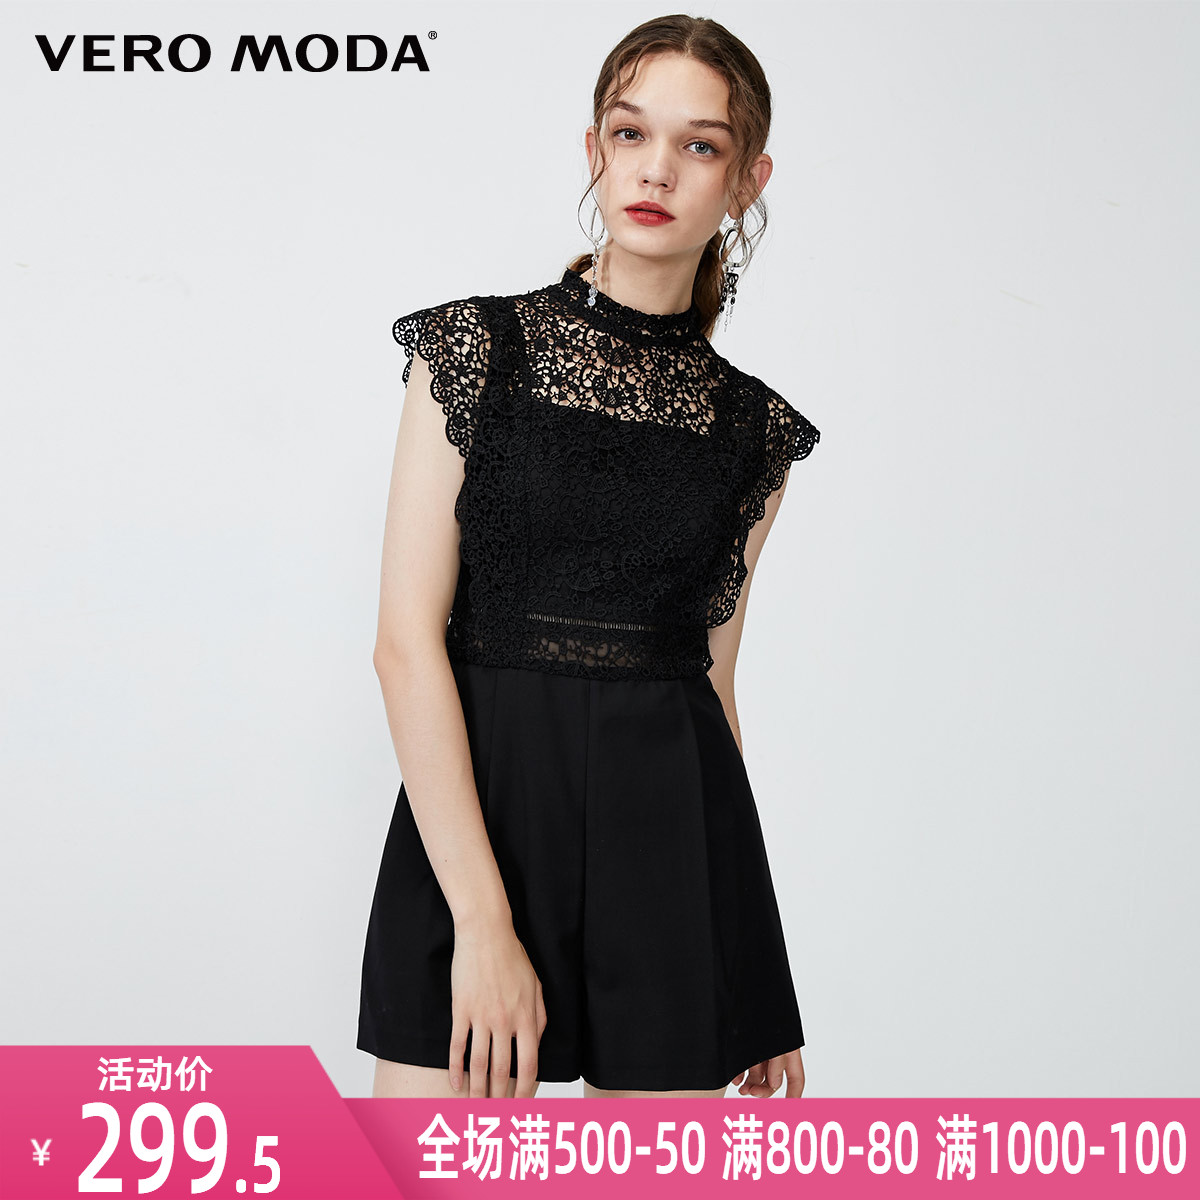 Vero moda2019 autumn and winter Vintage Black Lace Design short sleeveless Jumpsuit for women 319378517